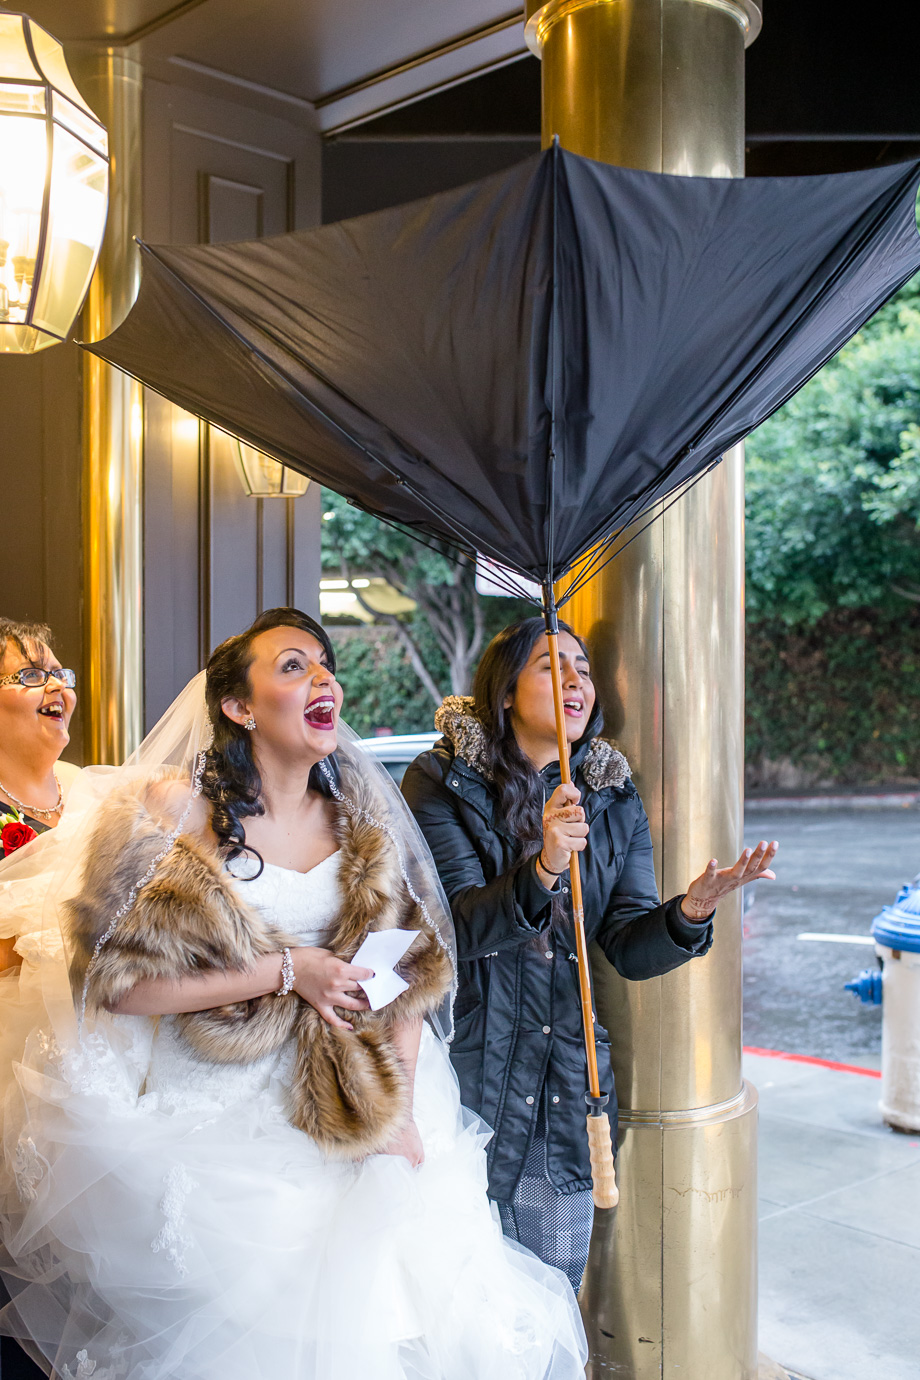 The umbrella flipped upside down when the bride stepped out the hotel lobby for her SF City hall wedding